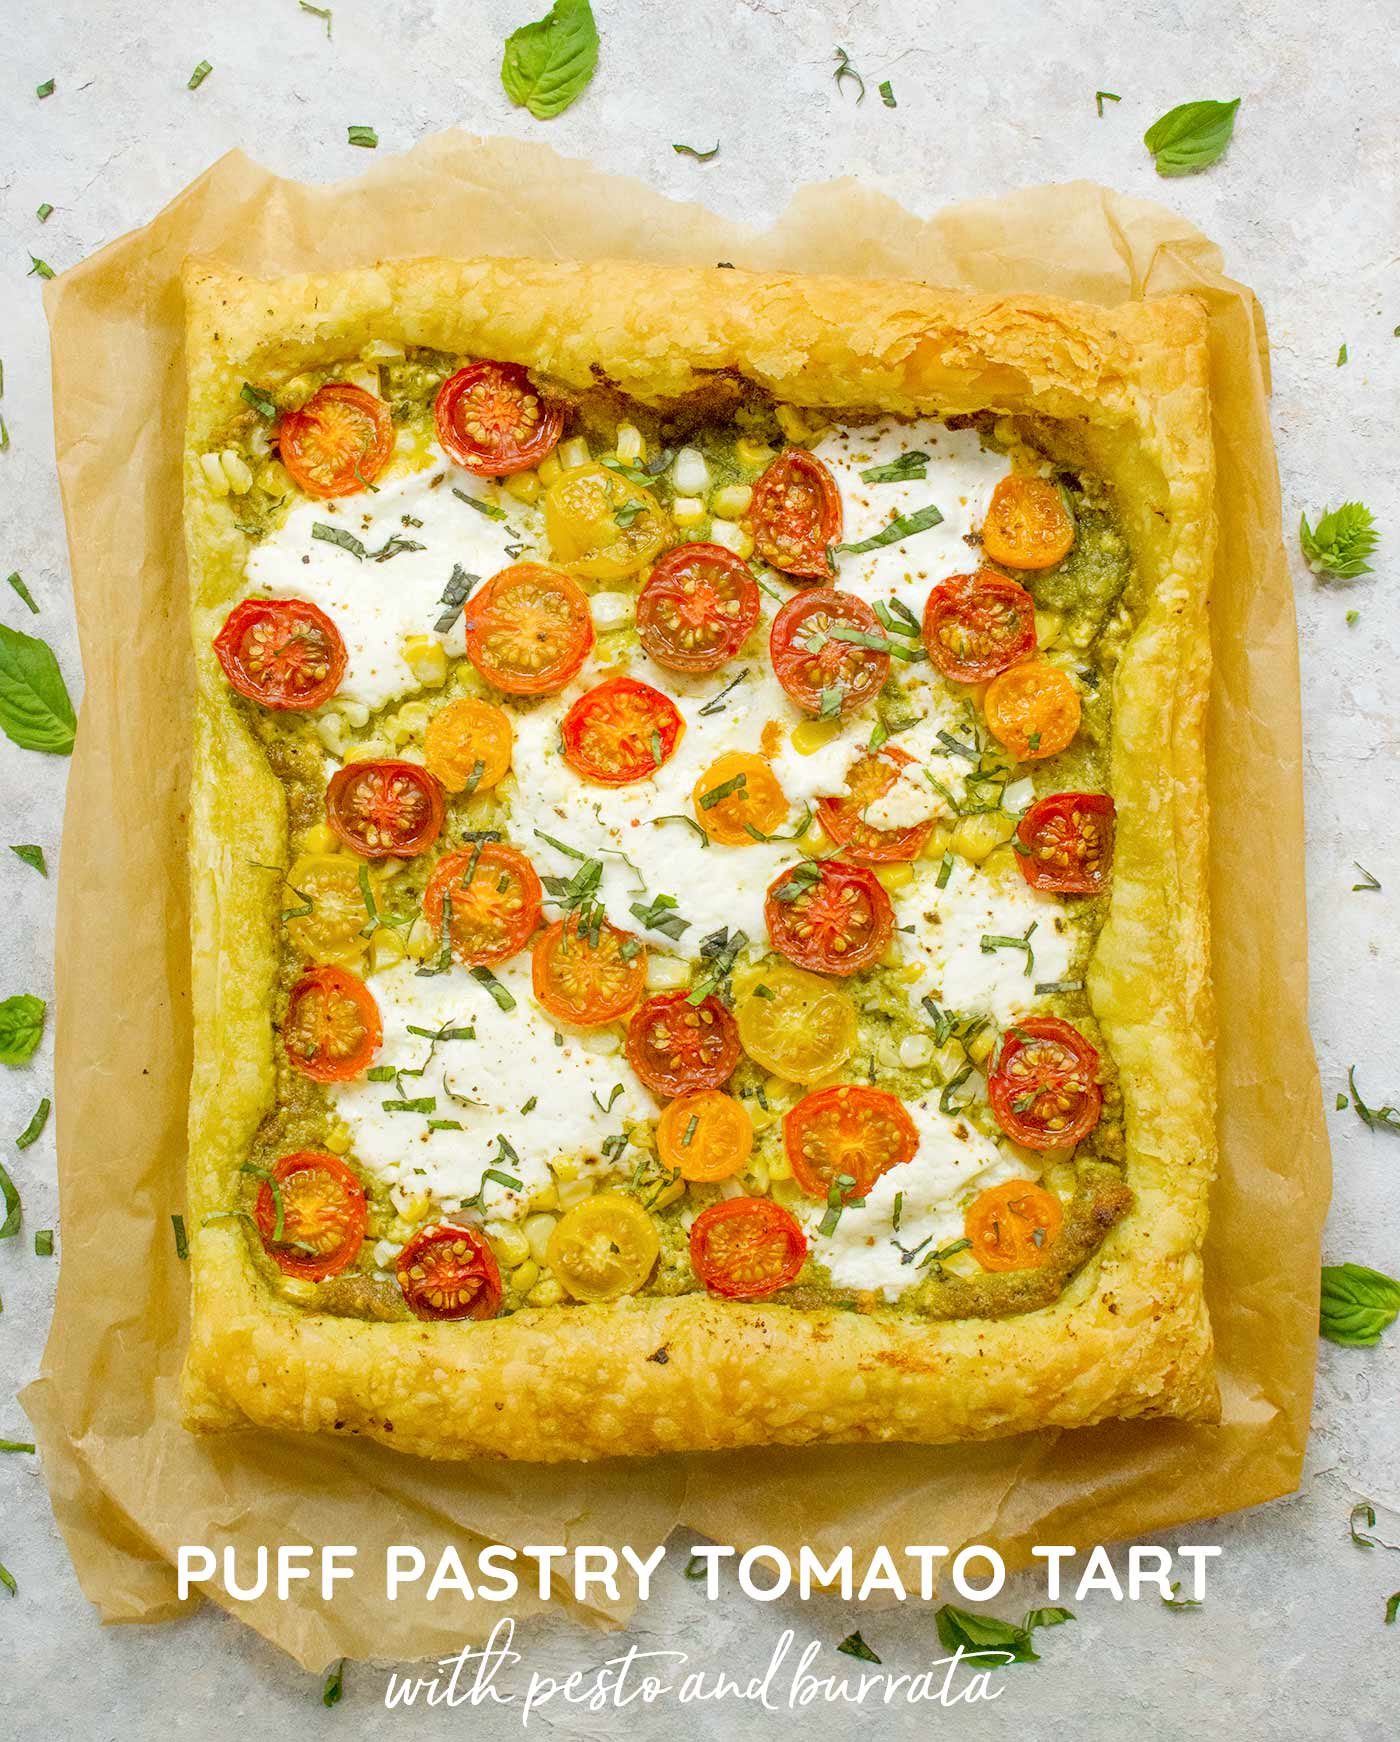 Puff Pastry Tomato Tart - Recipe at SoupAddict.com